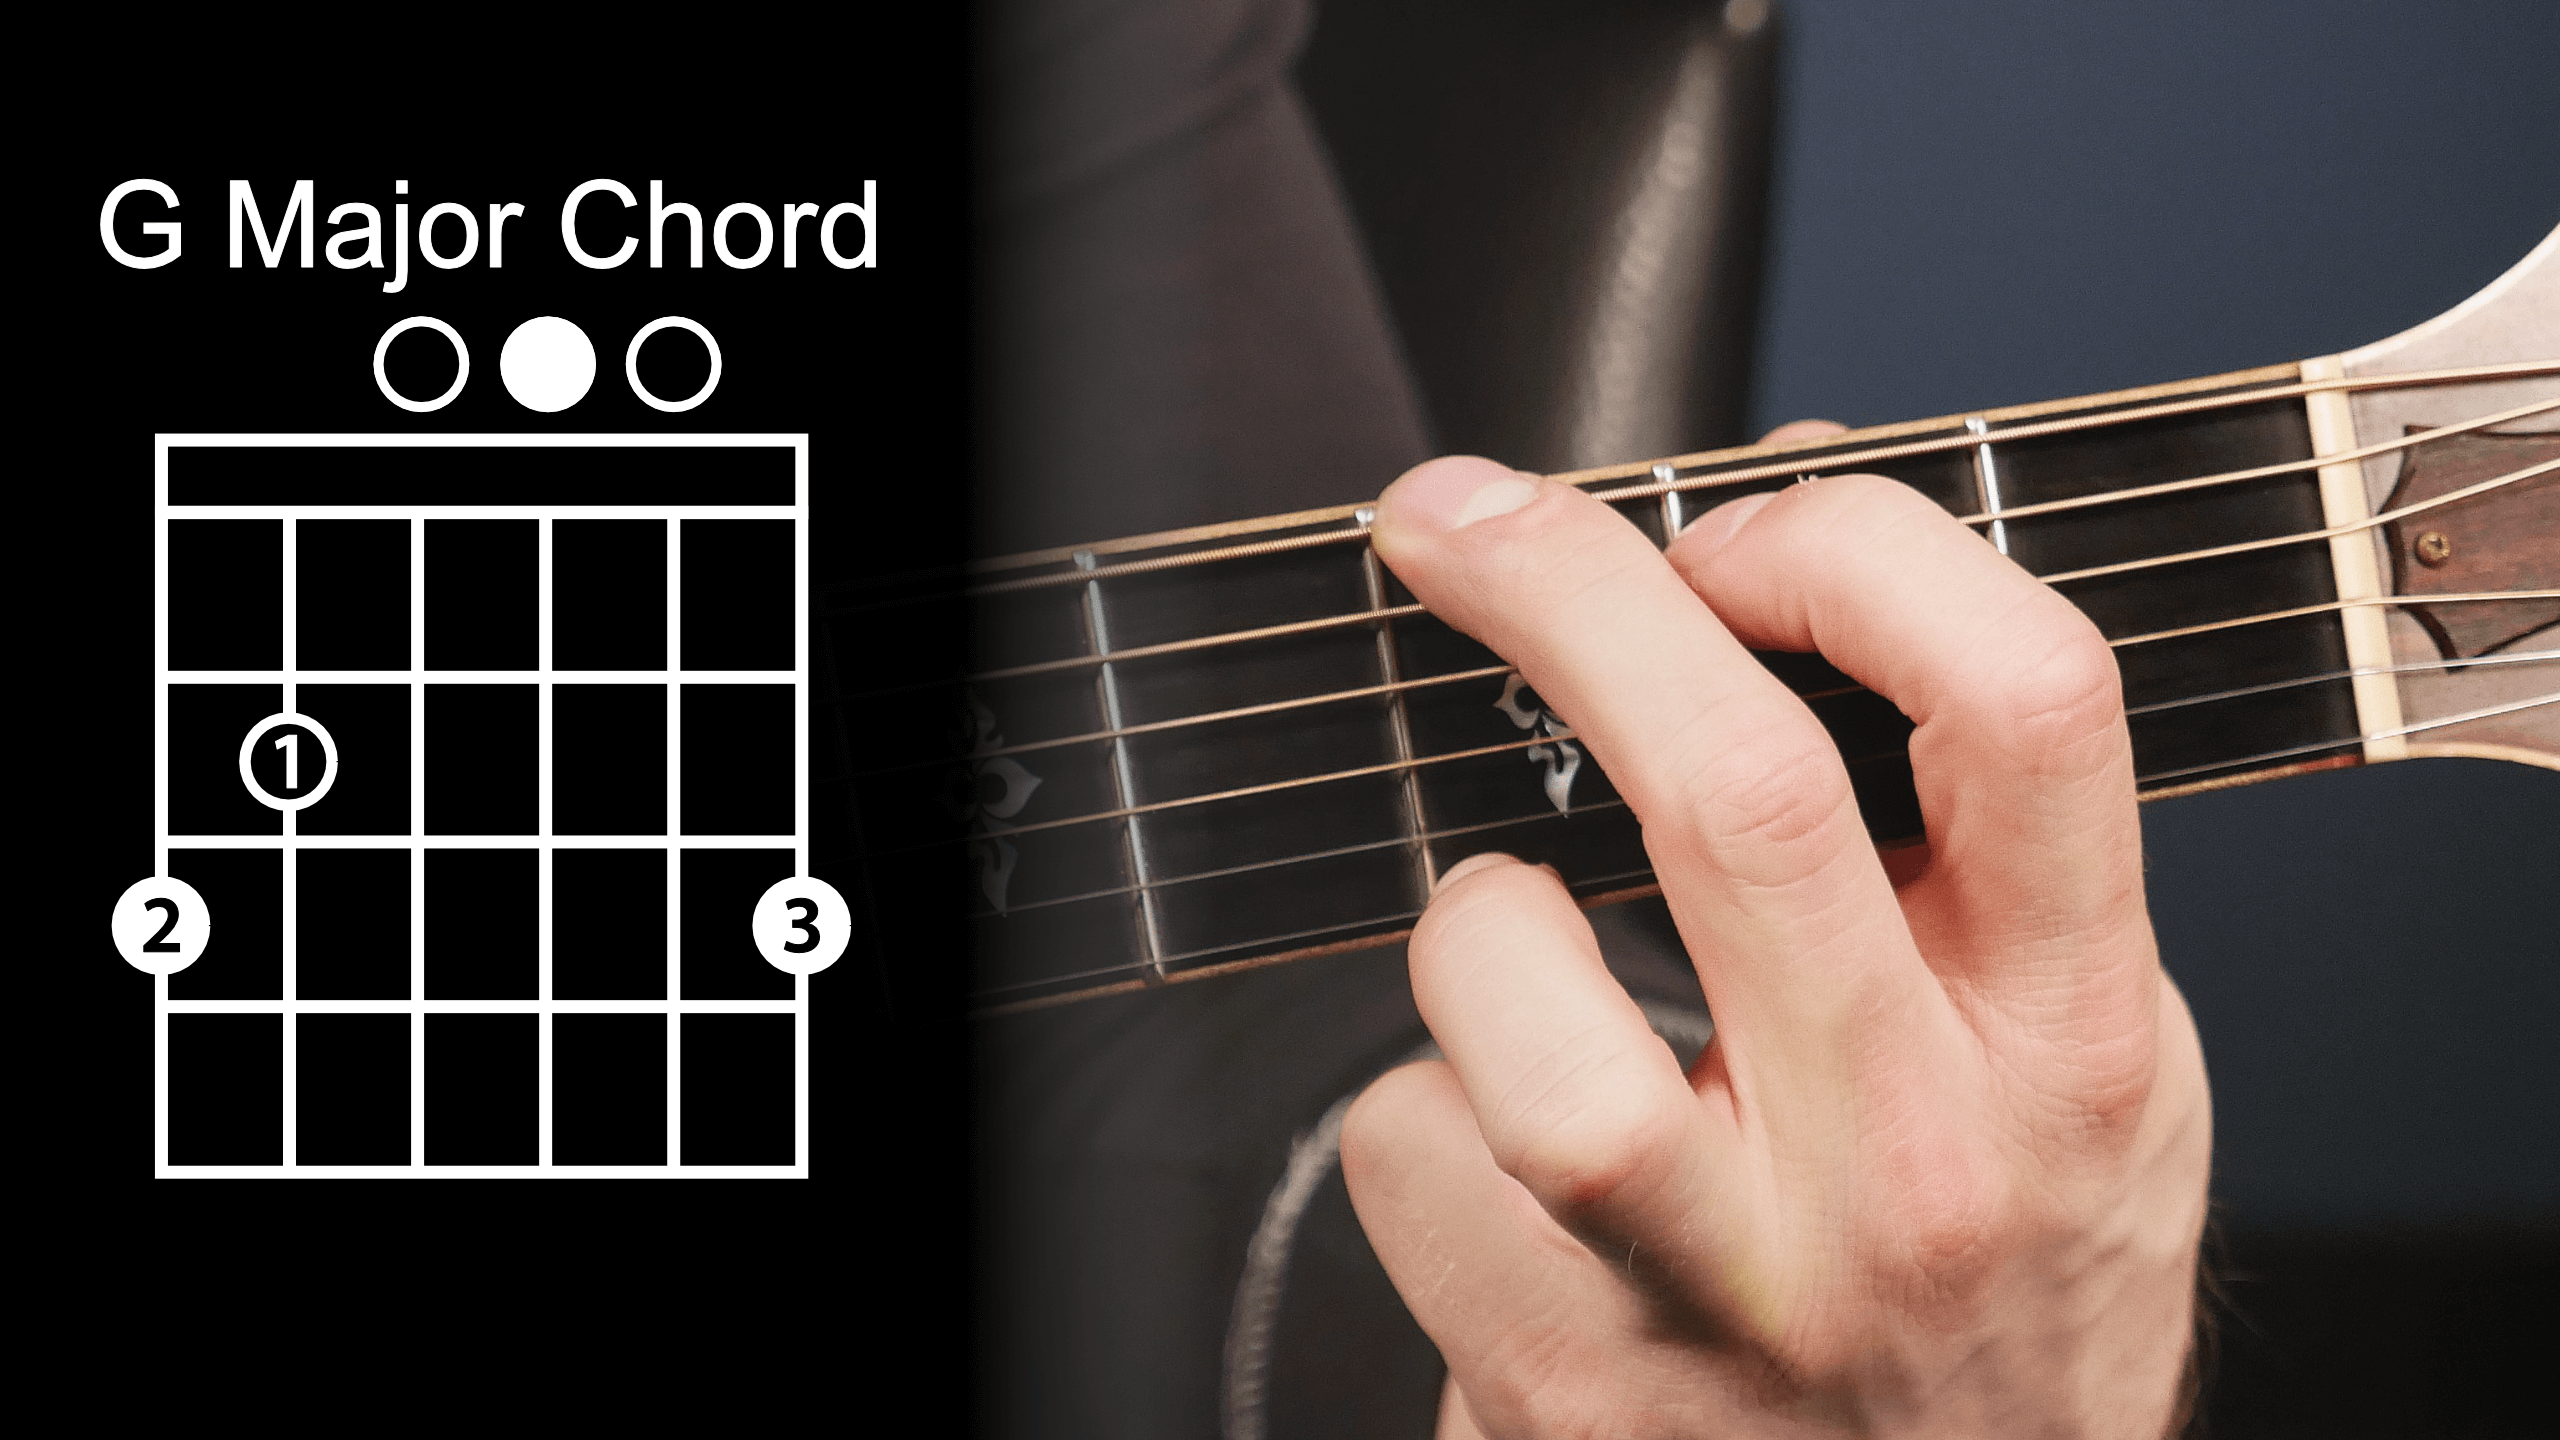 Two more guitar chords beginner guitar lessons g major chord diagram hexwebz Choice Image